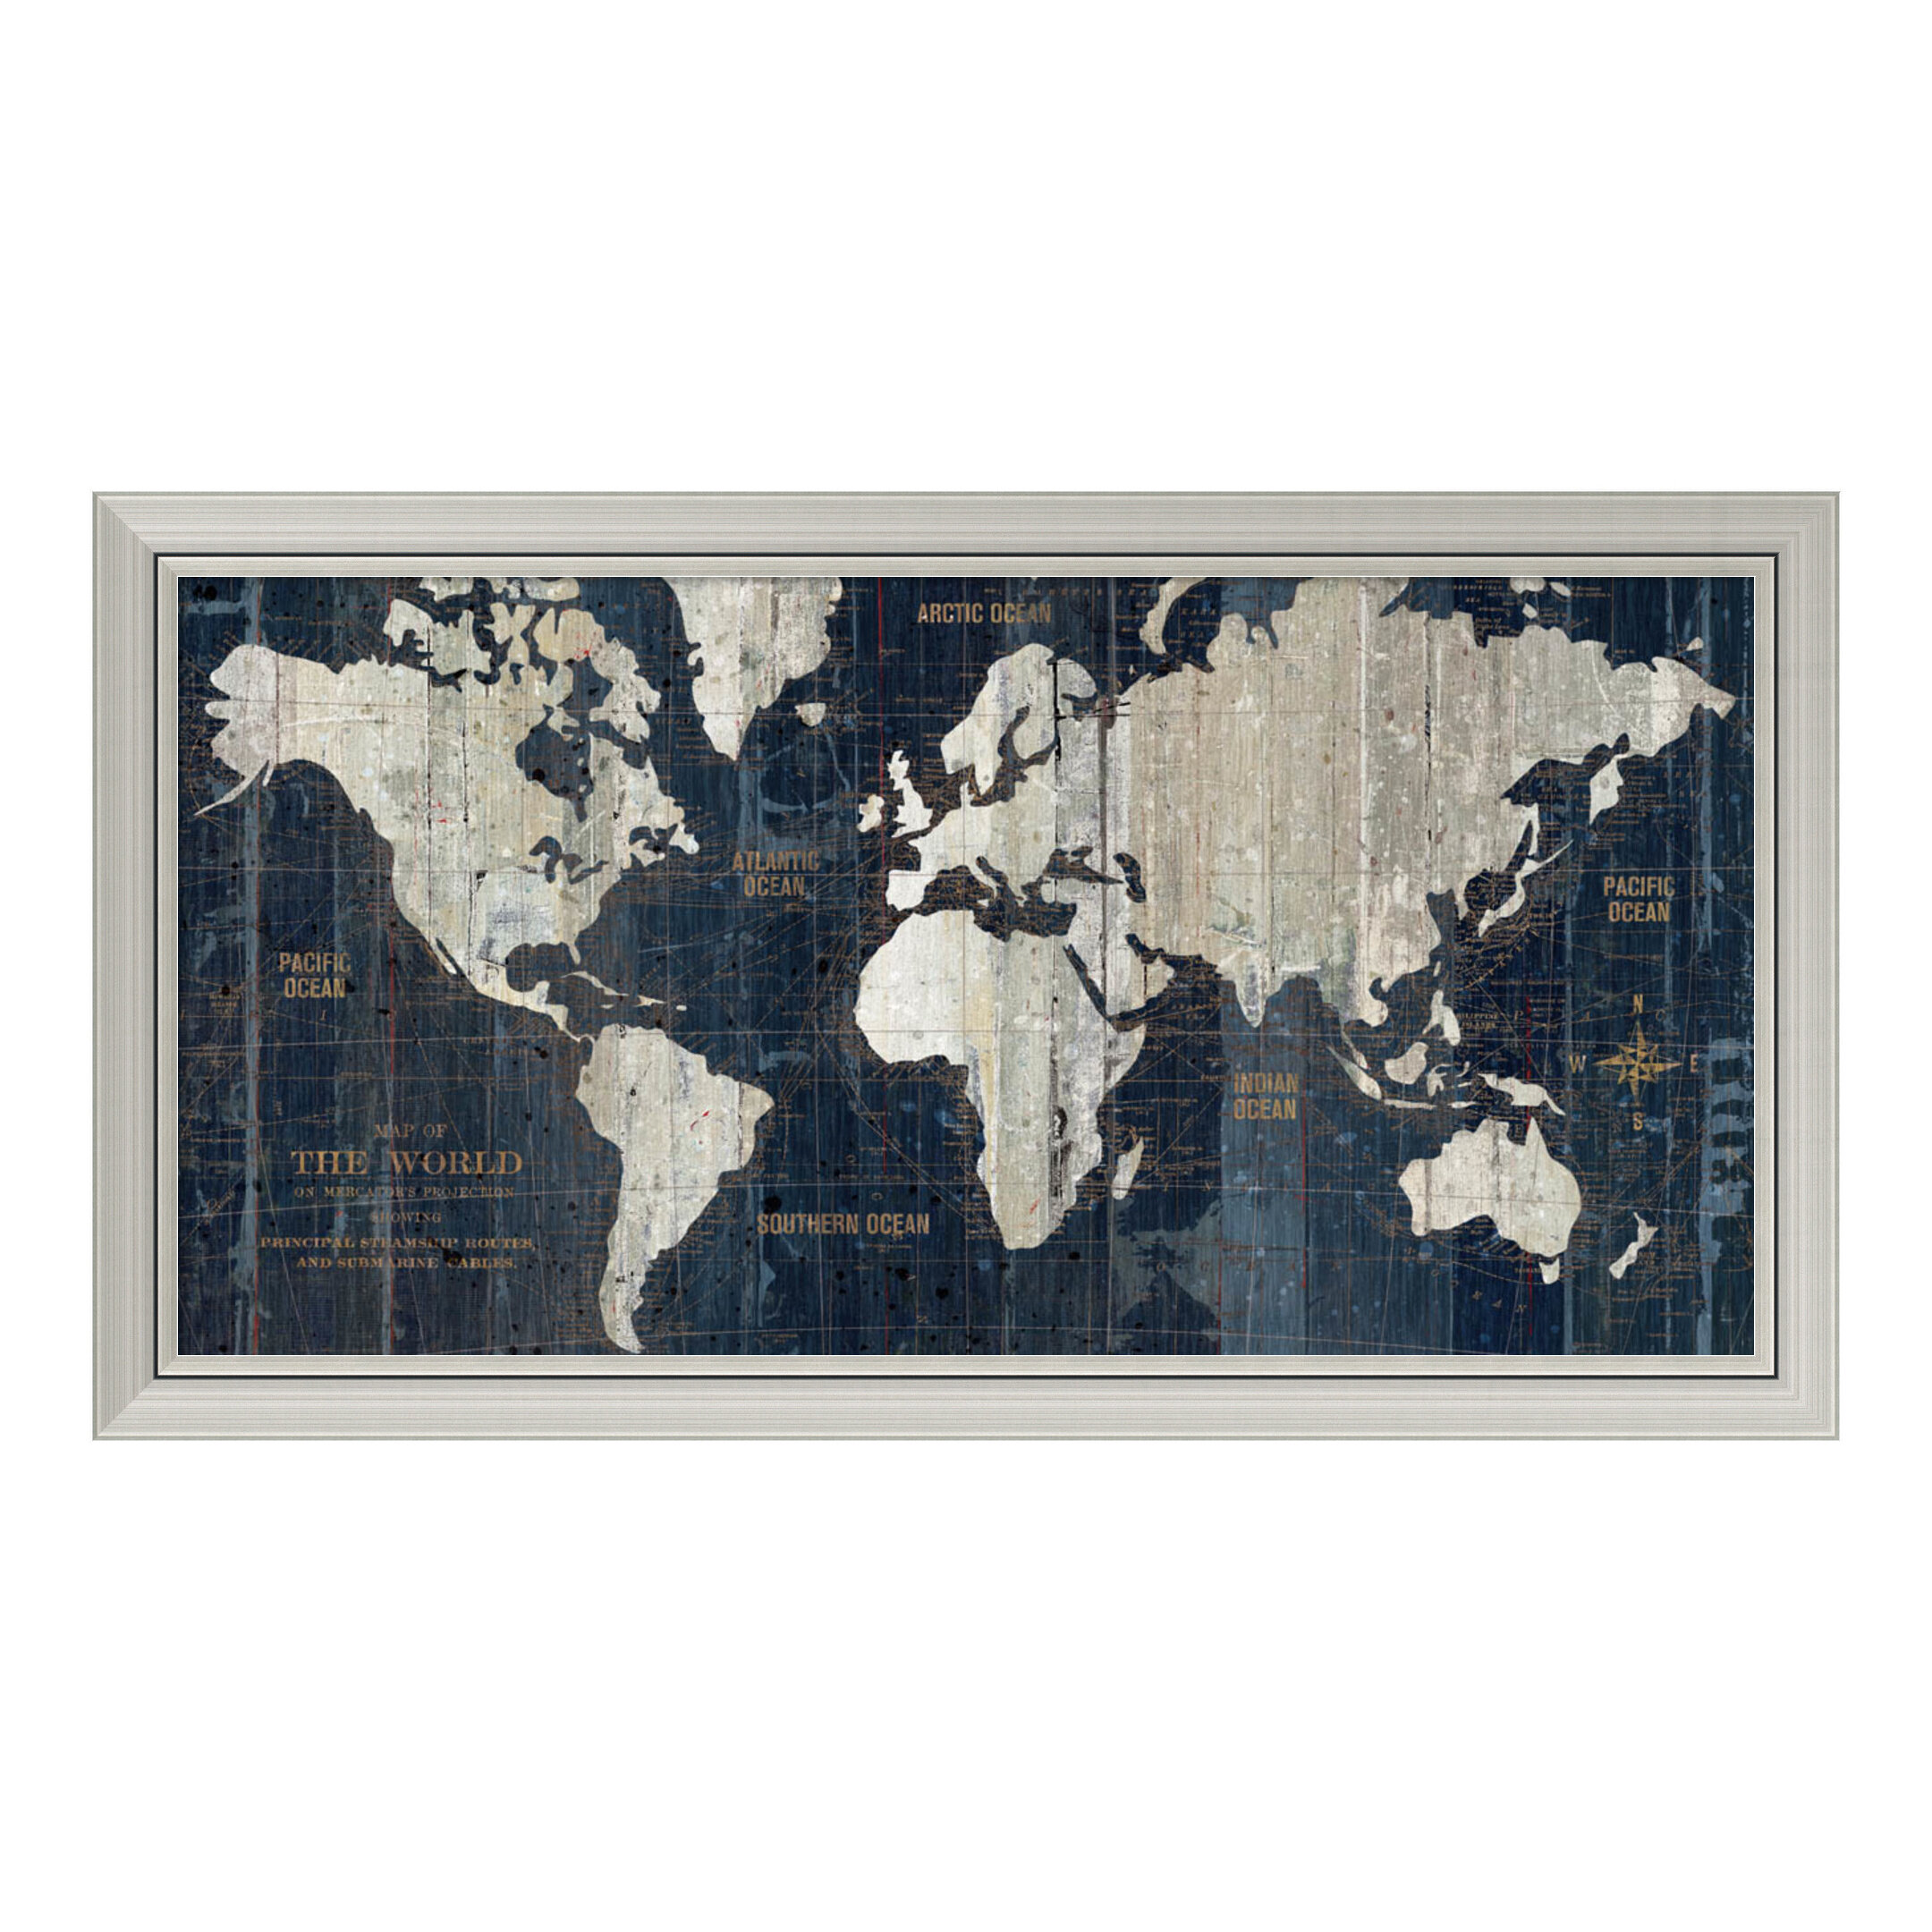 Old world map framed graphic art reviews joss main gumiabroncs Choice Image